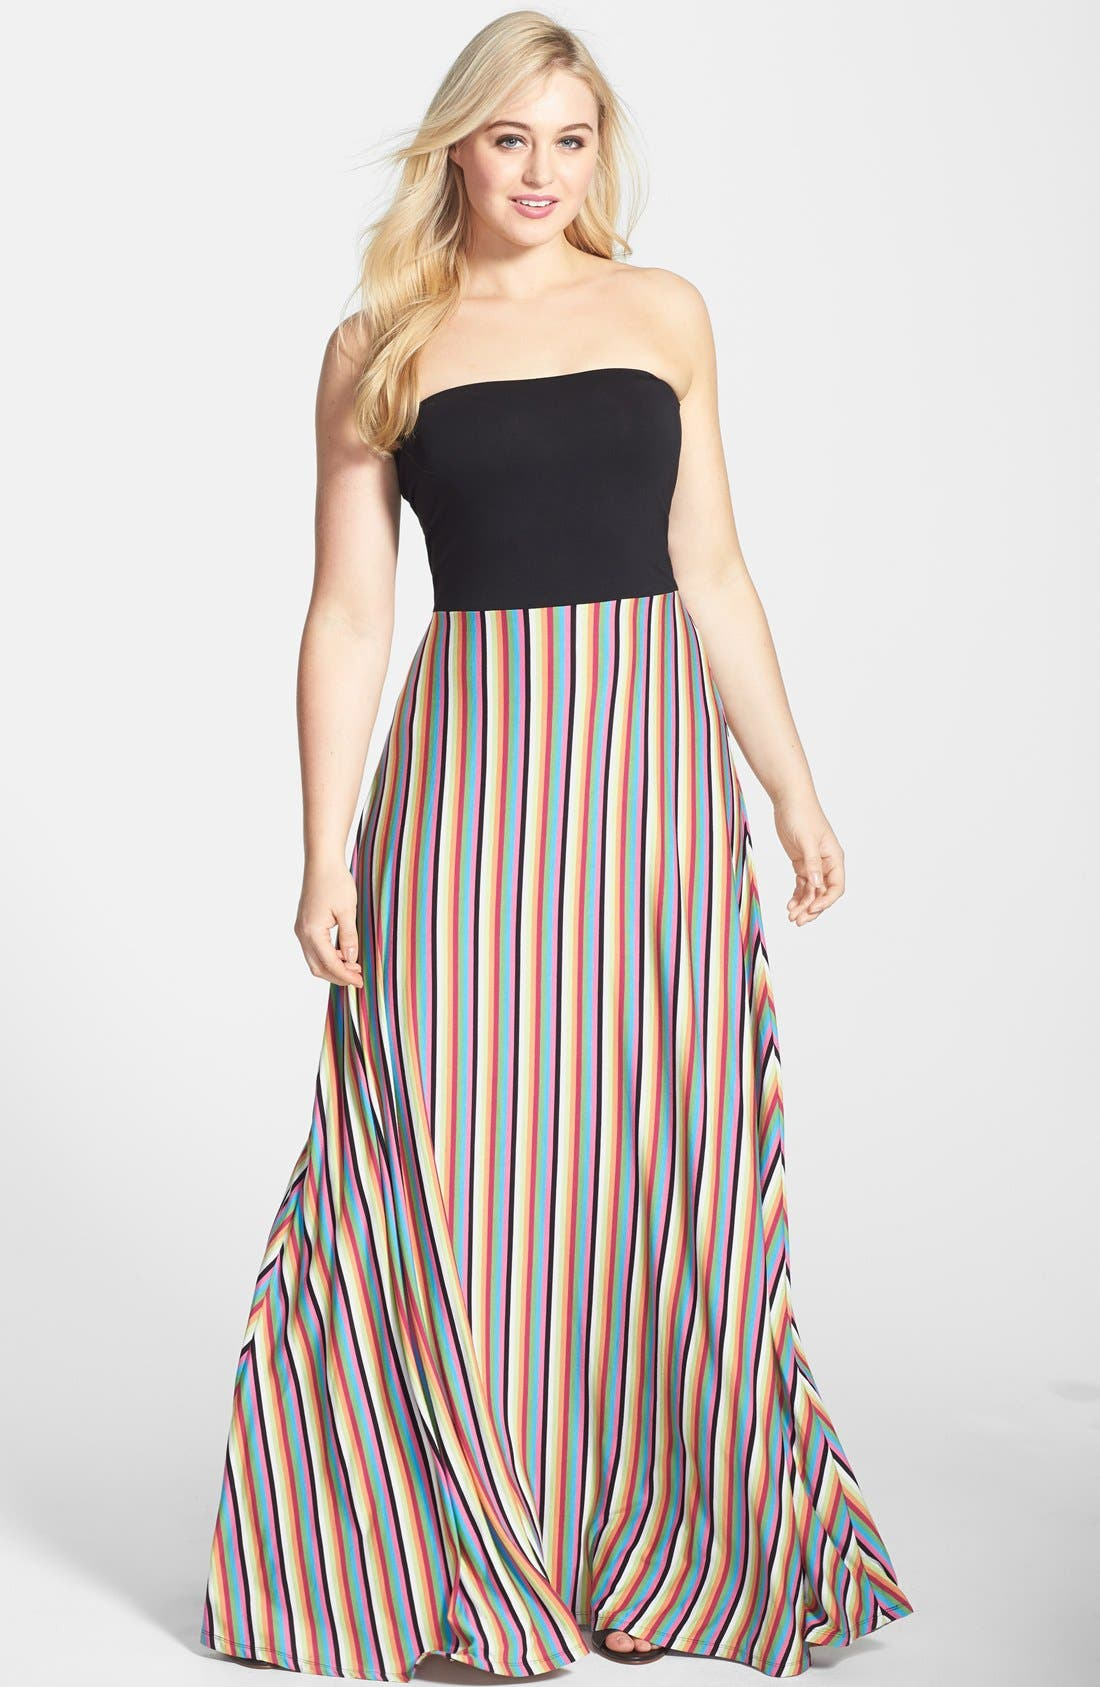 Alternate Image 1 Selected - Felicity & Coco Stripe Strapless Maxi Dress (Plus Size) (Nordstrom Exclusive)